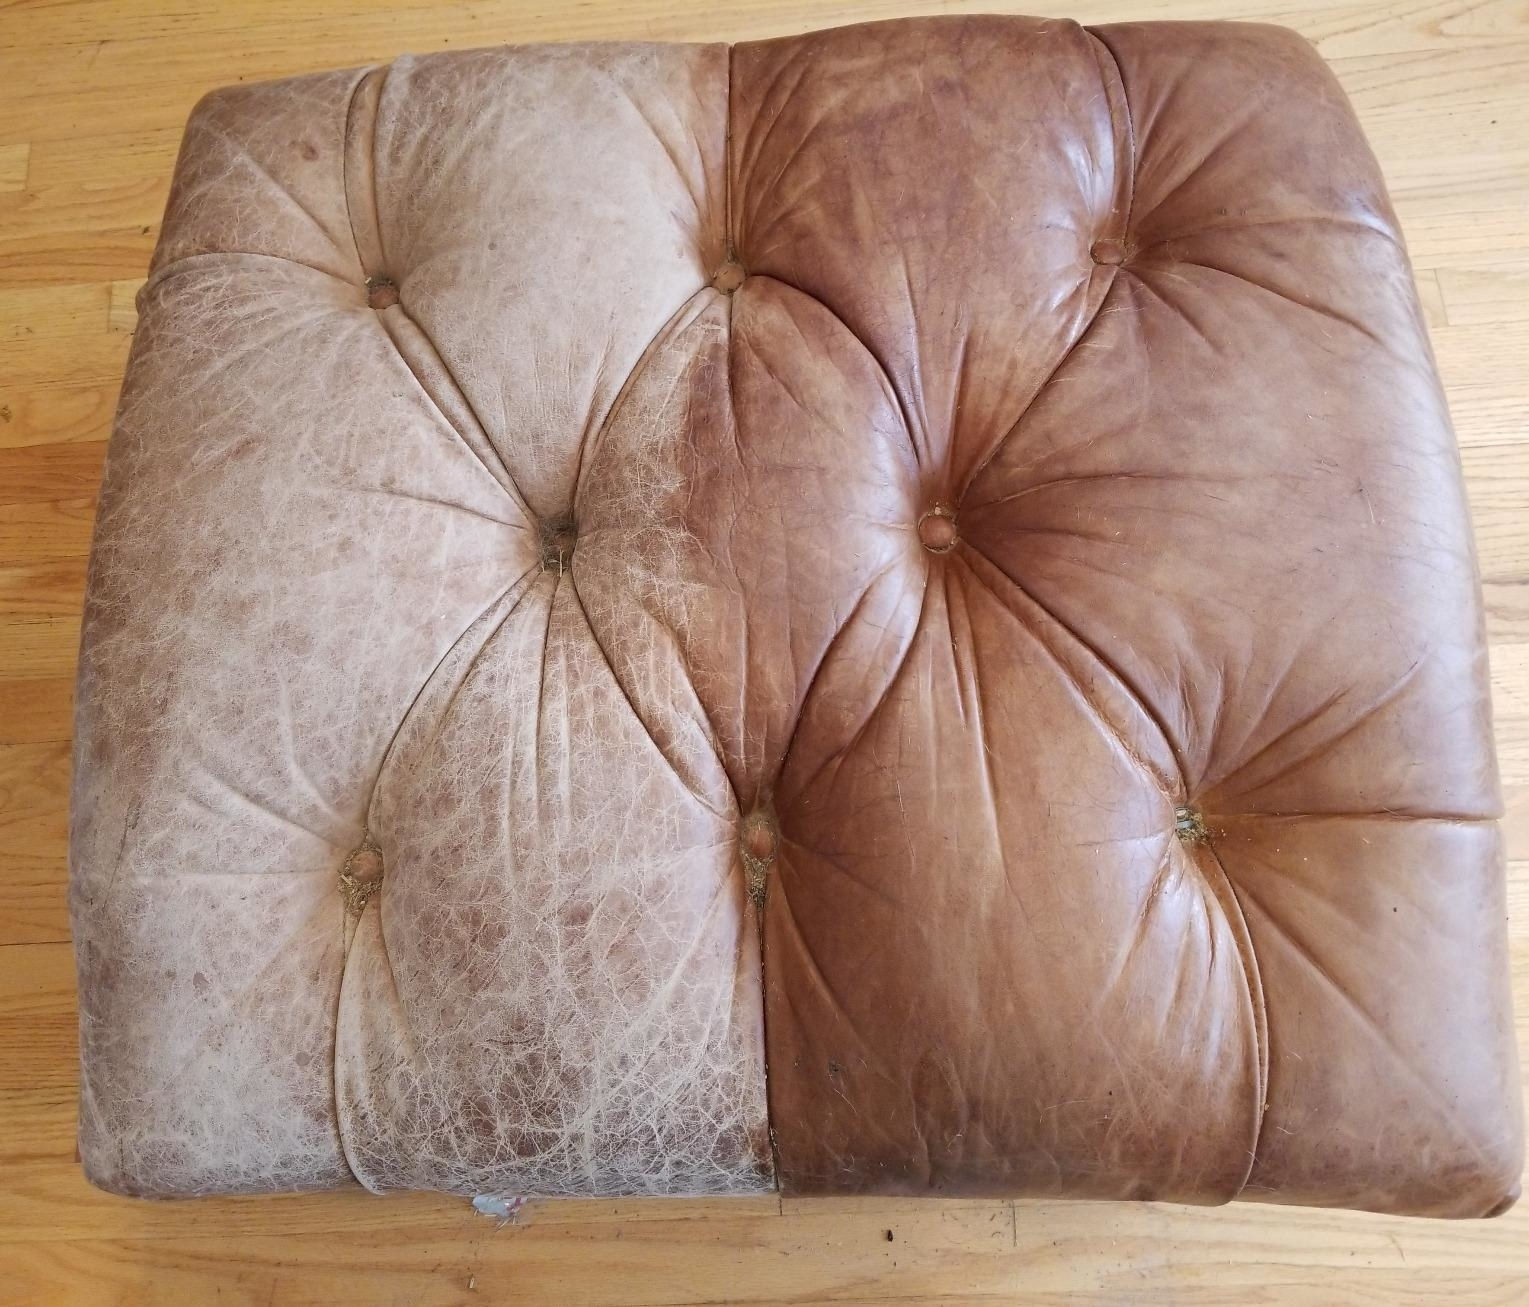 A tufted leather ottoman, the right half greyish and old leather, the right half a rich brown leather after conditioning